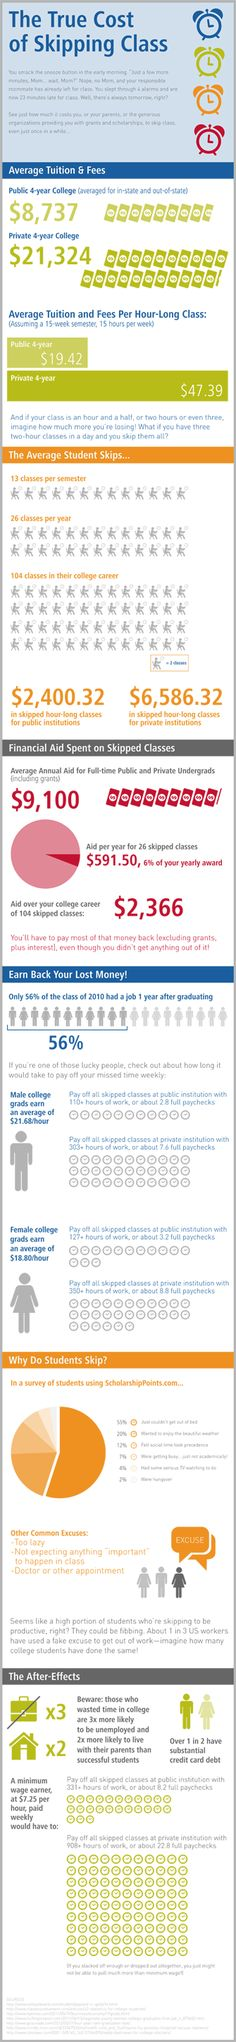 The True Cost of Skipping Class